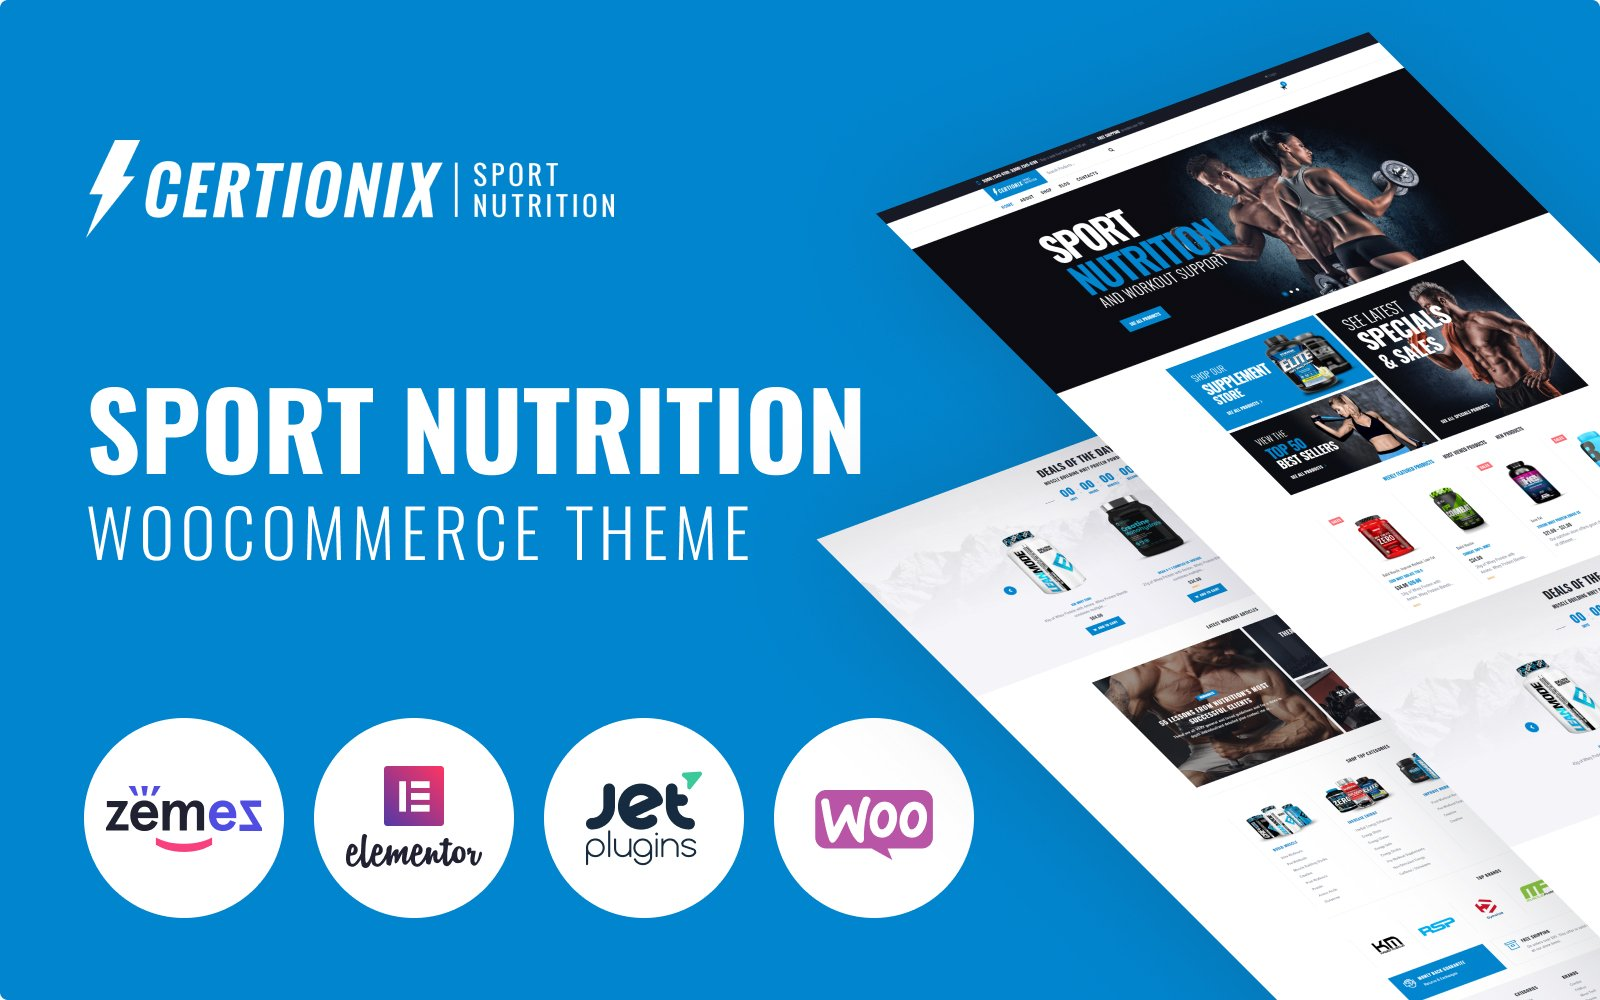 Certionix - Sport Nutrition Website Template with Woocommerce and Elementor №65870